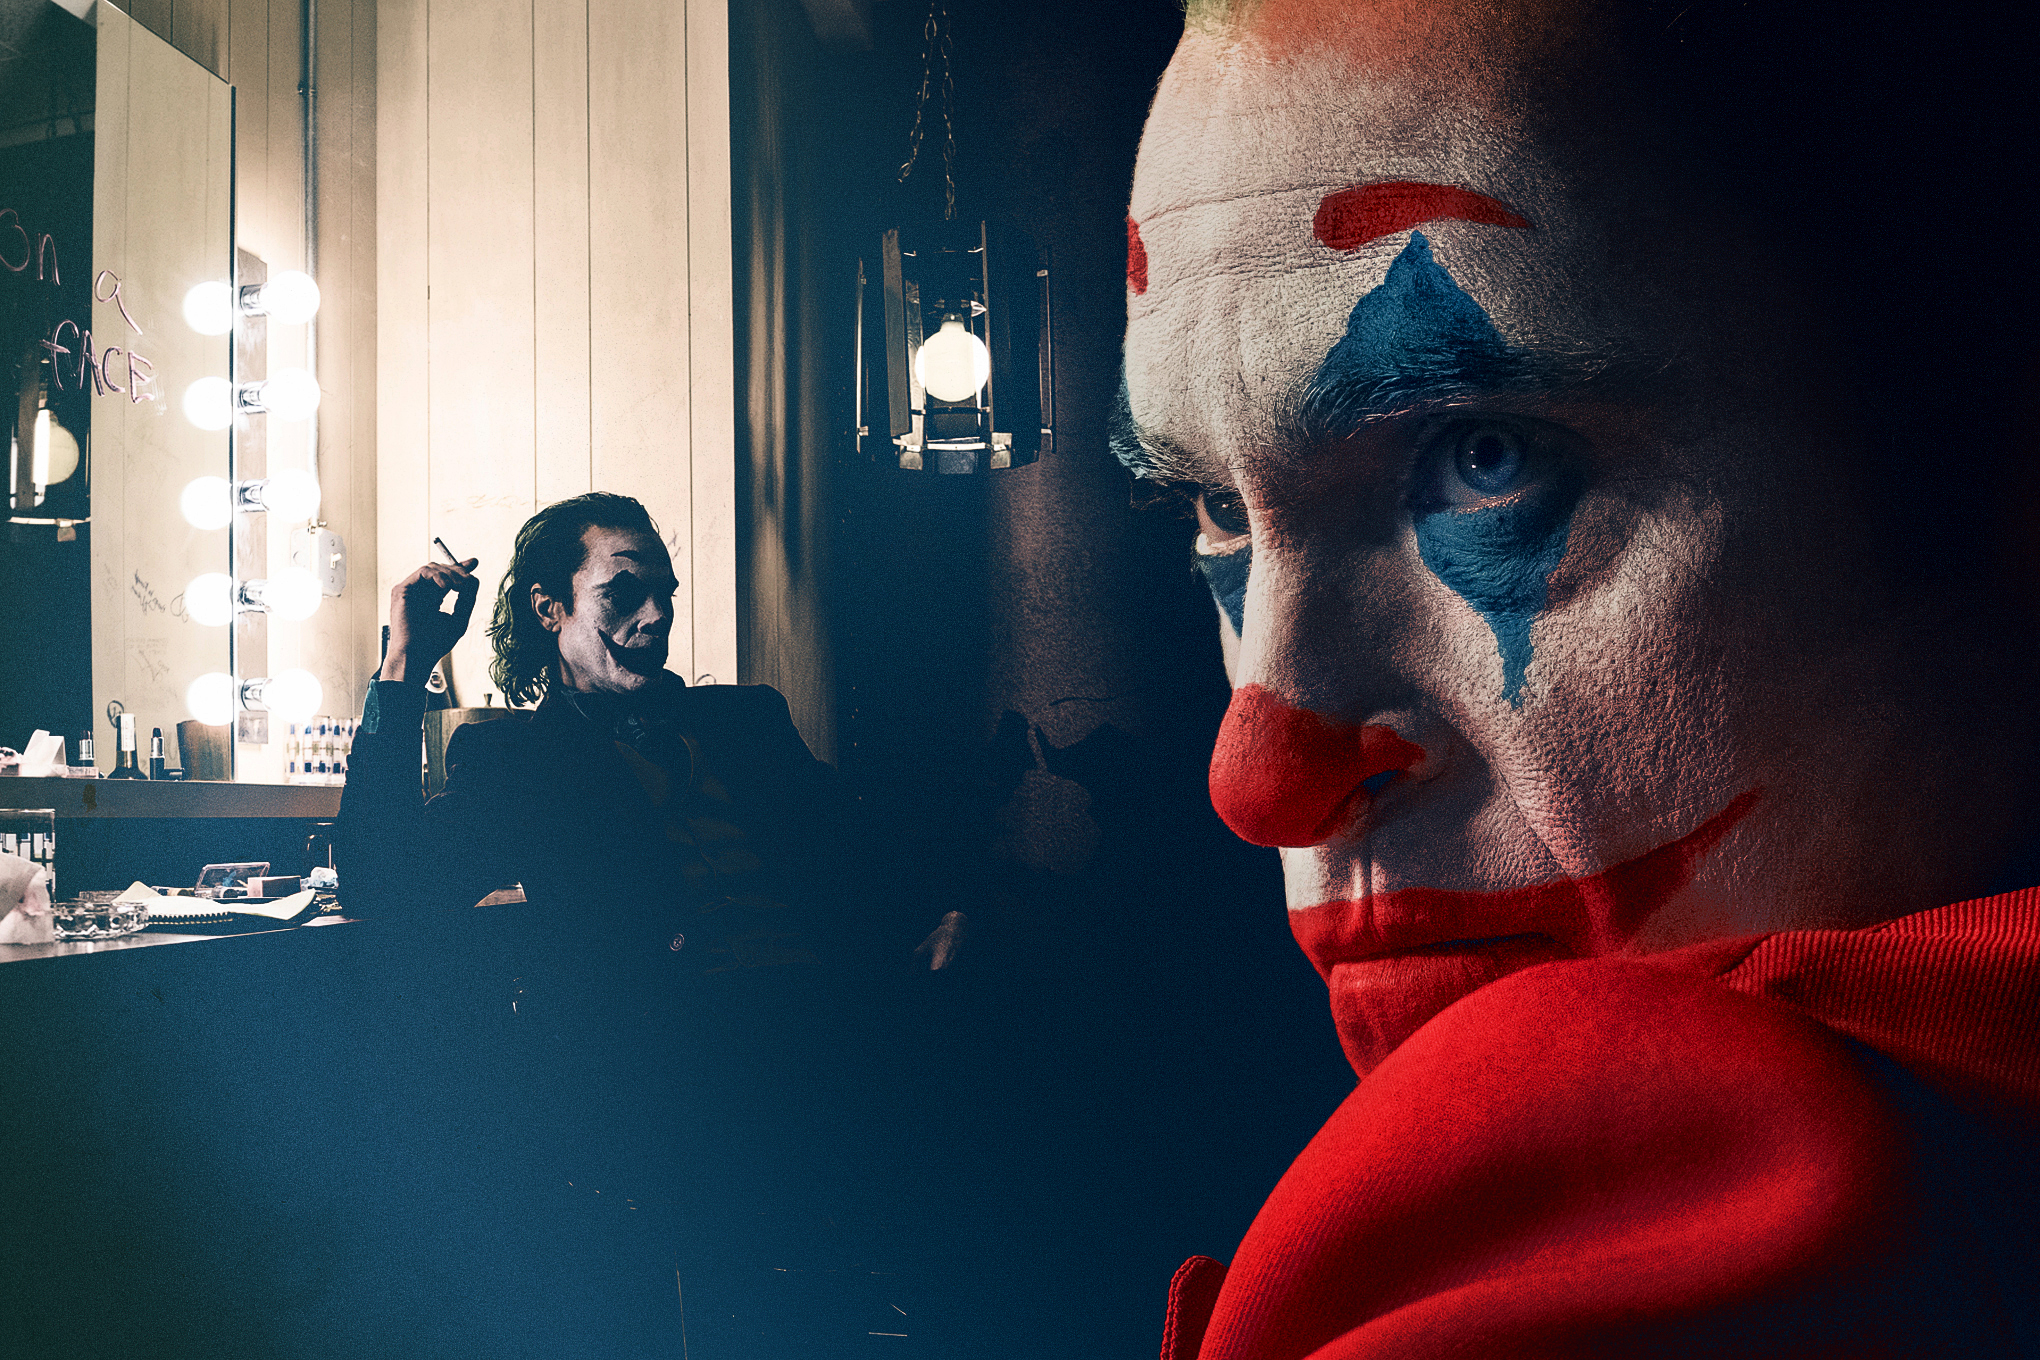 Photo composition featuring close up of Joaquin Phoenix as the Joker and him in his dressing room